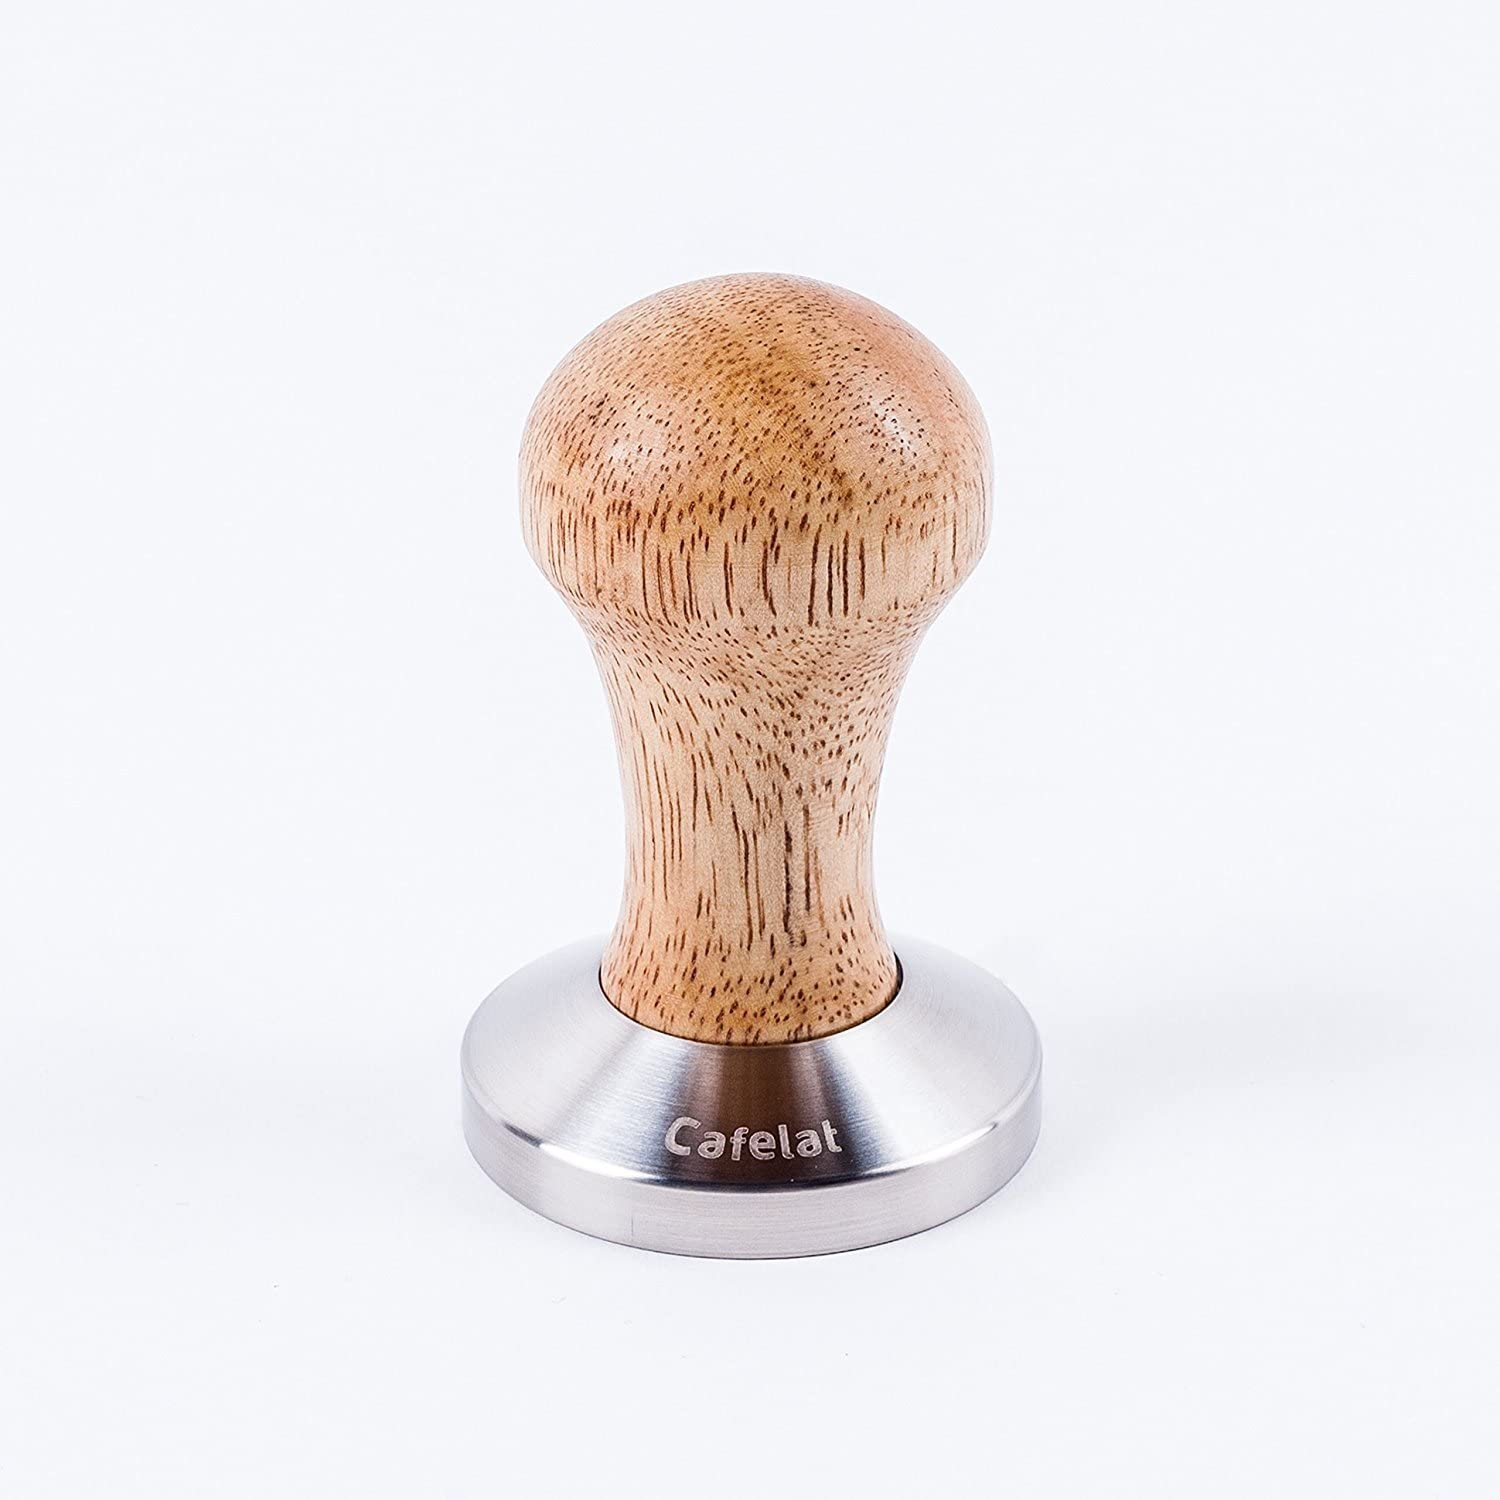 Cafelat Stainless Steel and Wood Espresso Tamper (58mm Flat)